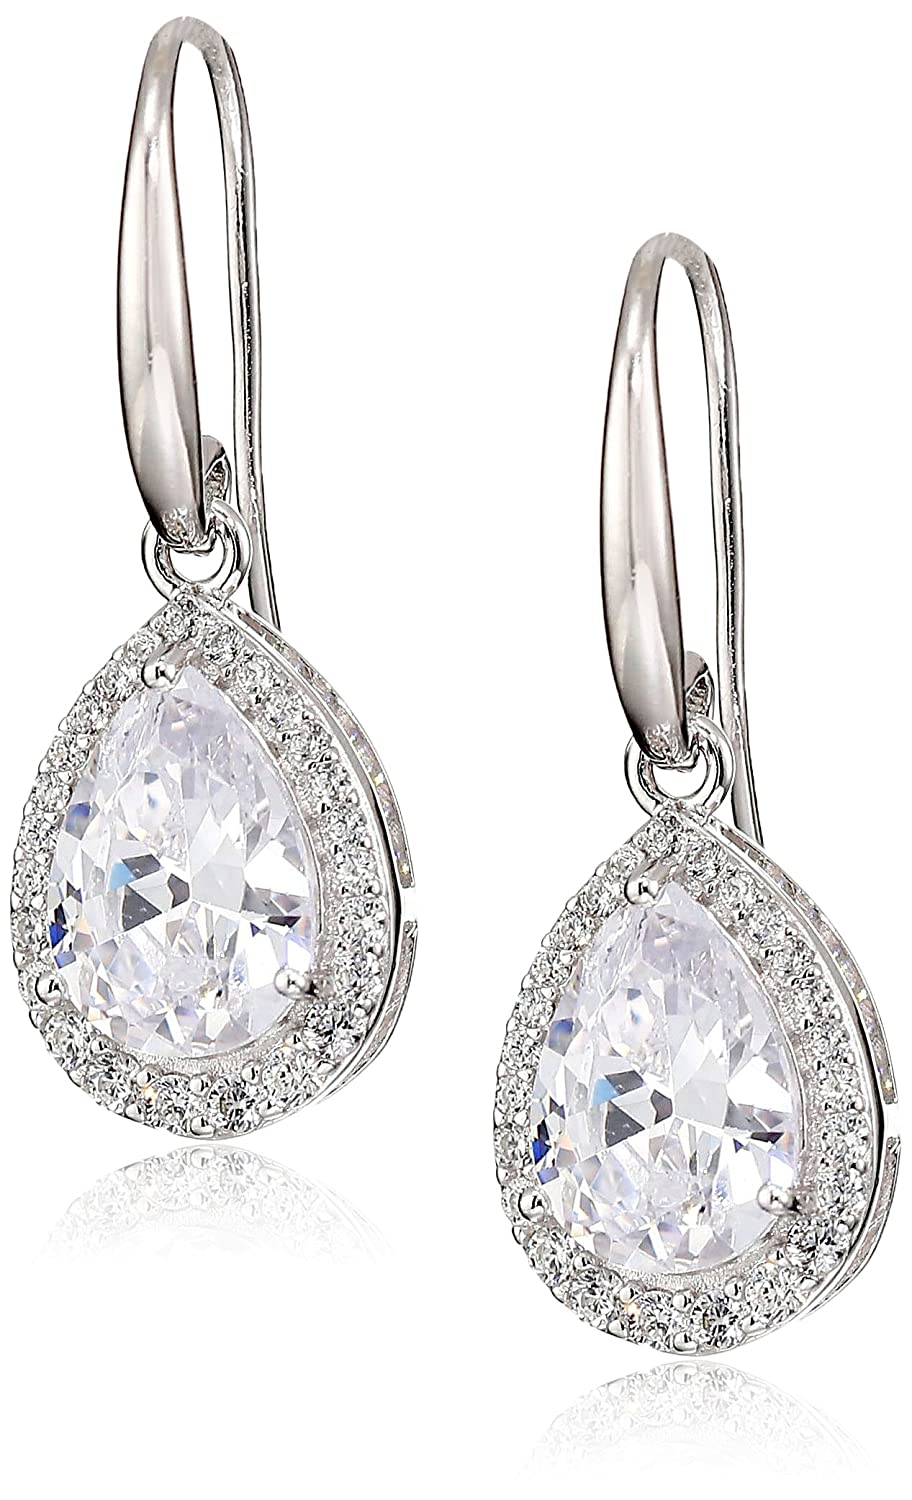 Rhodium Plated Sterling Silver Cubic Zirconia Pear-Shape Halo Dangle Earrings (6.6 cttw) Amazon Collection R2AH4V0001